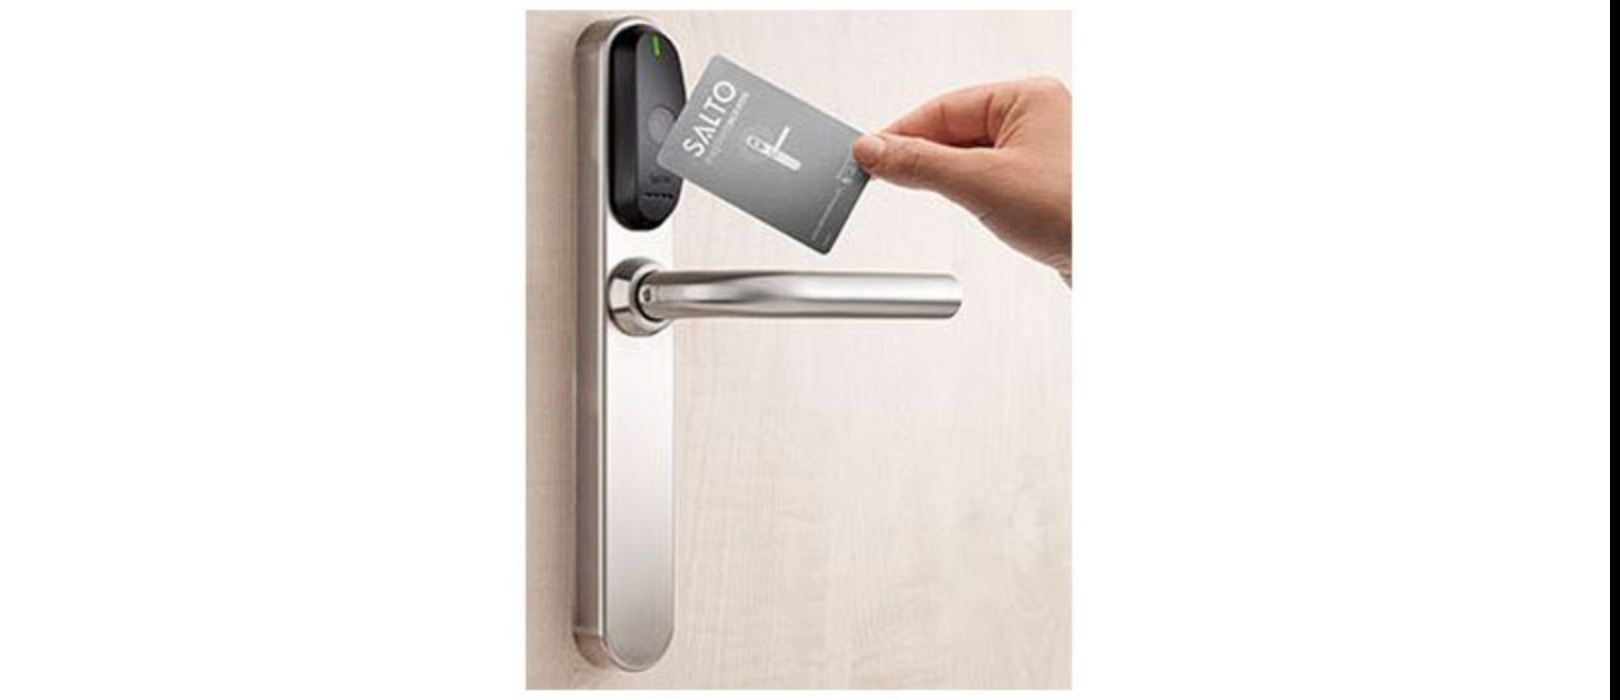 PAS24 doorsets now available with Electronic FOB locking main image